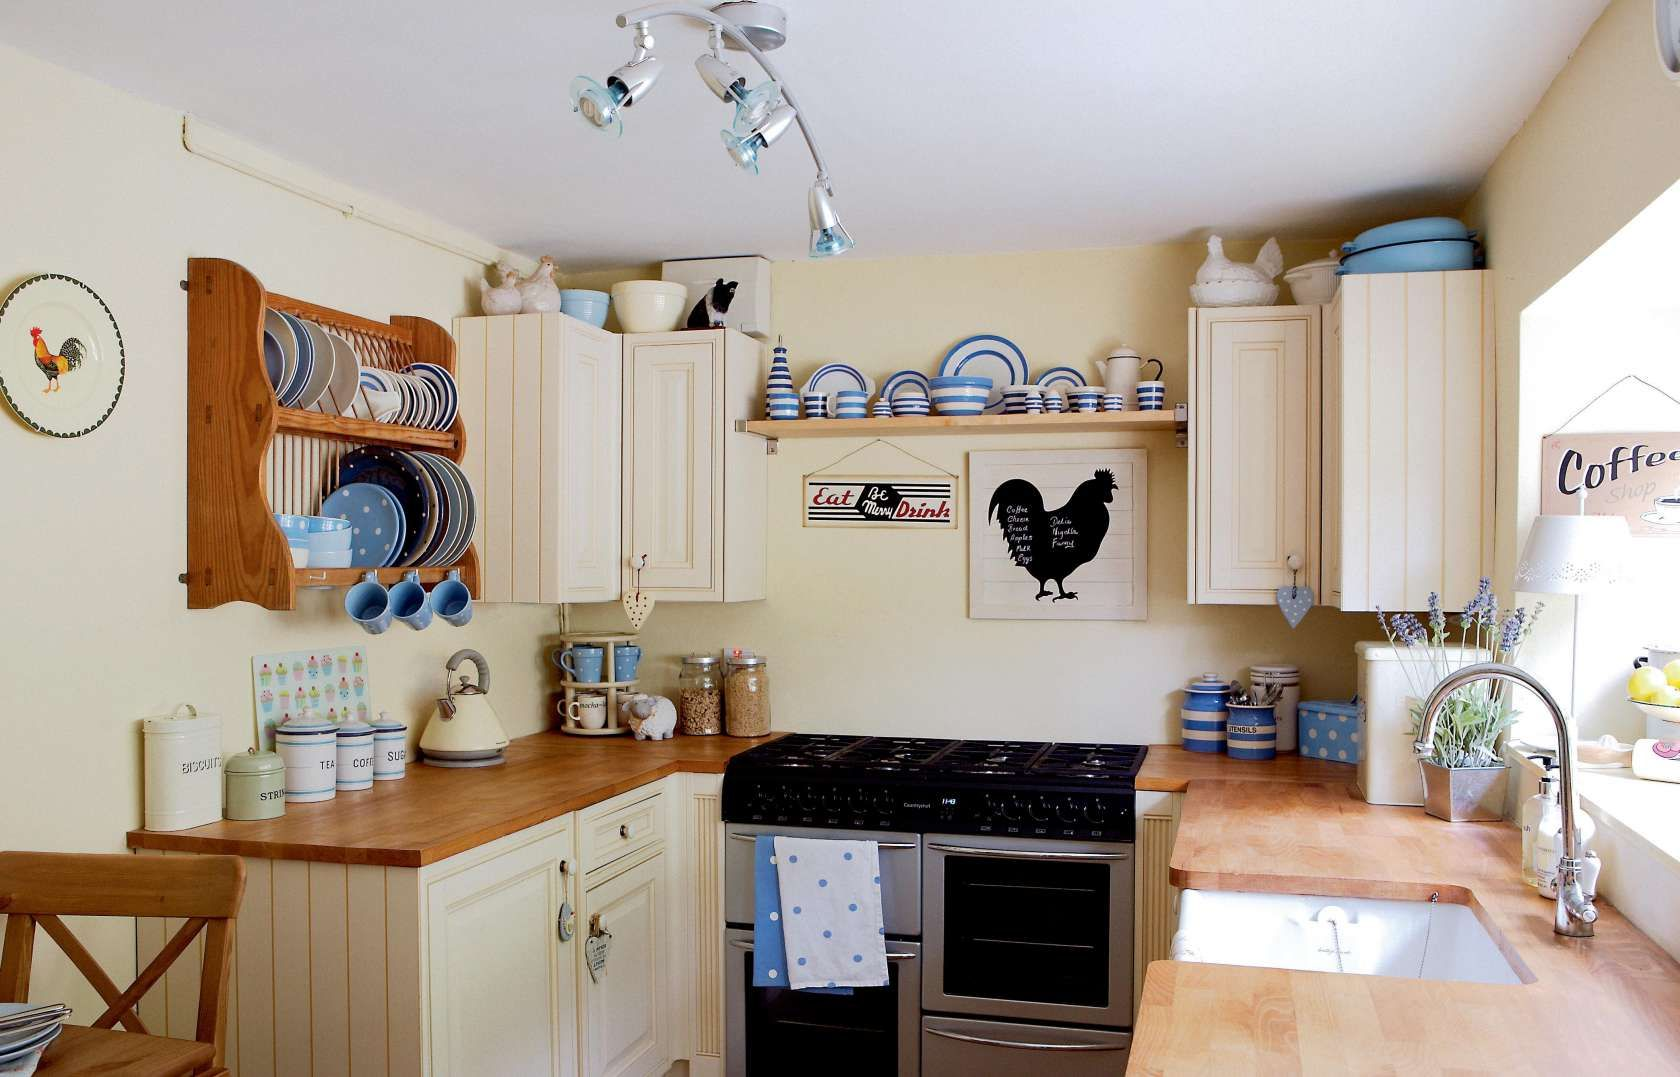 Small kitchen transformation | Period Living | Cottage ...